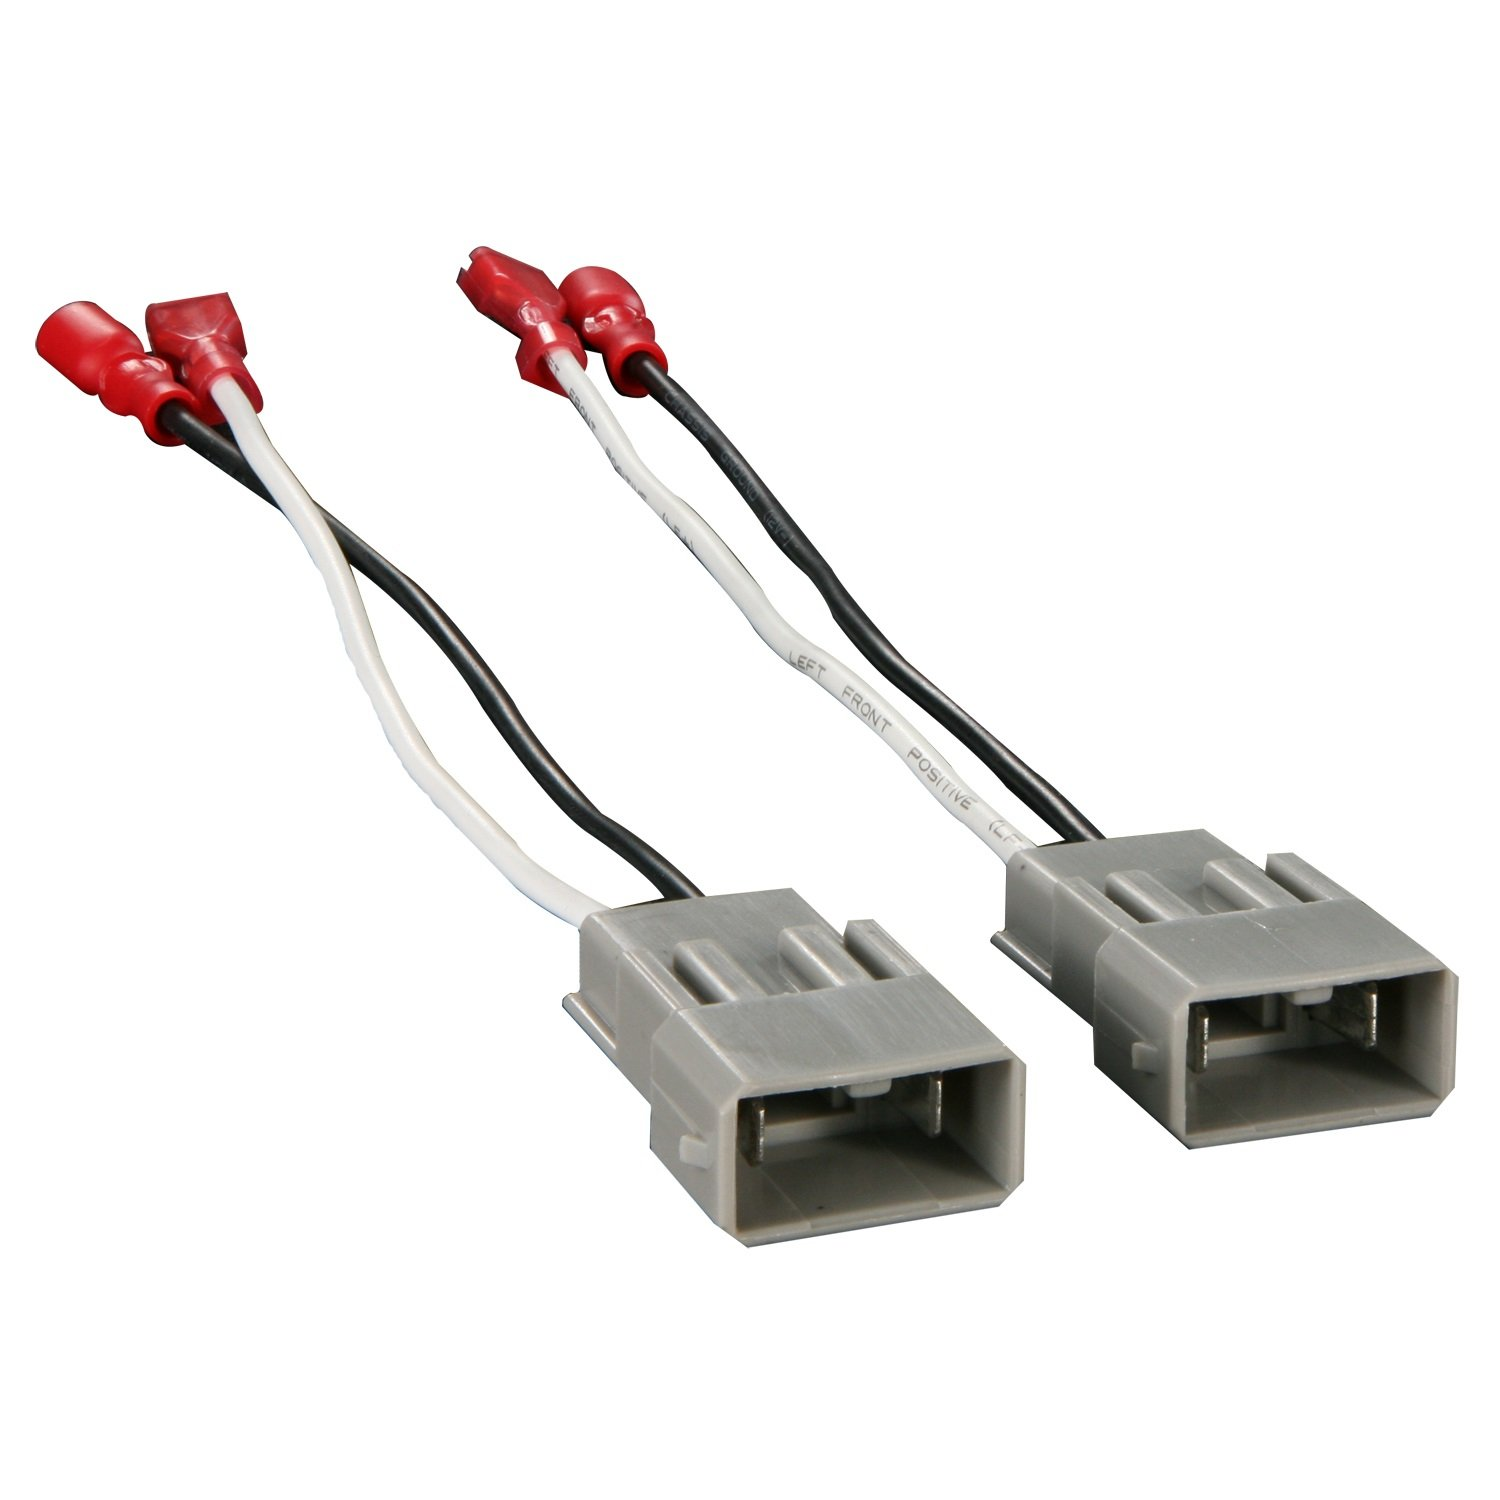 61IiEhc7w5L._SL1500_ amazon com metra 72 7800 speaker connector harnesses for select electrical wiring harness connectors at webbmarketing.co